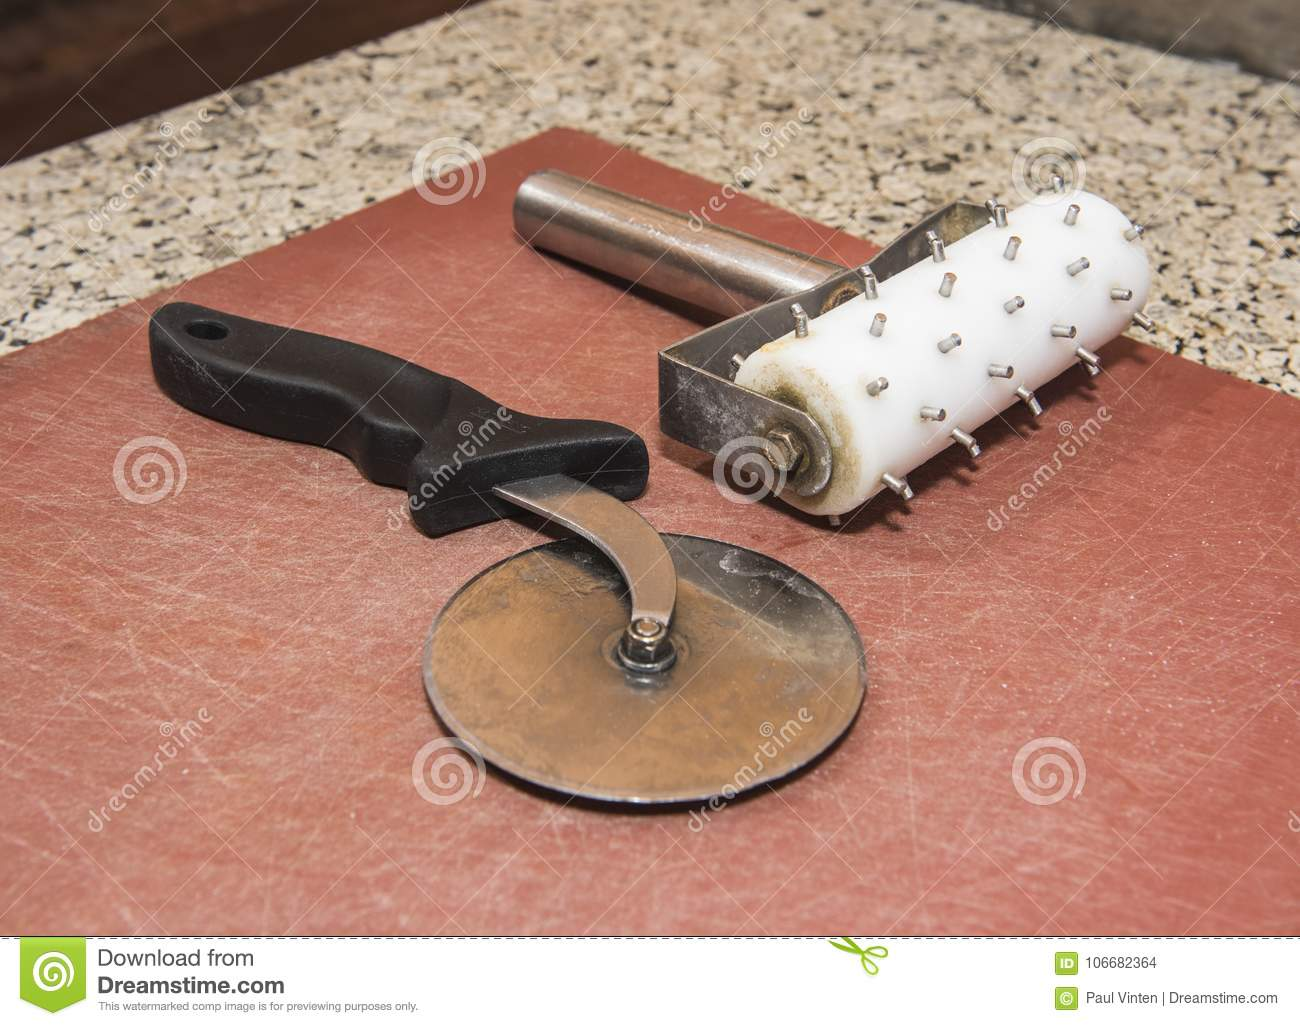 Pizza Roller And Cutter On Chopping Board At Snack Bar Stock Photo Image Of Pizza Dough 106682364